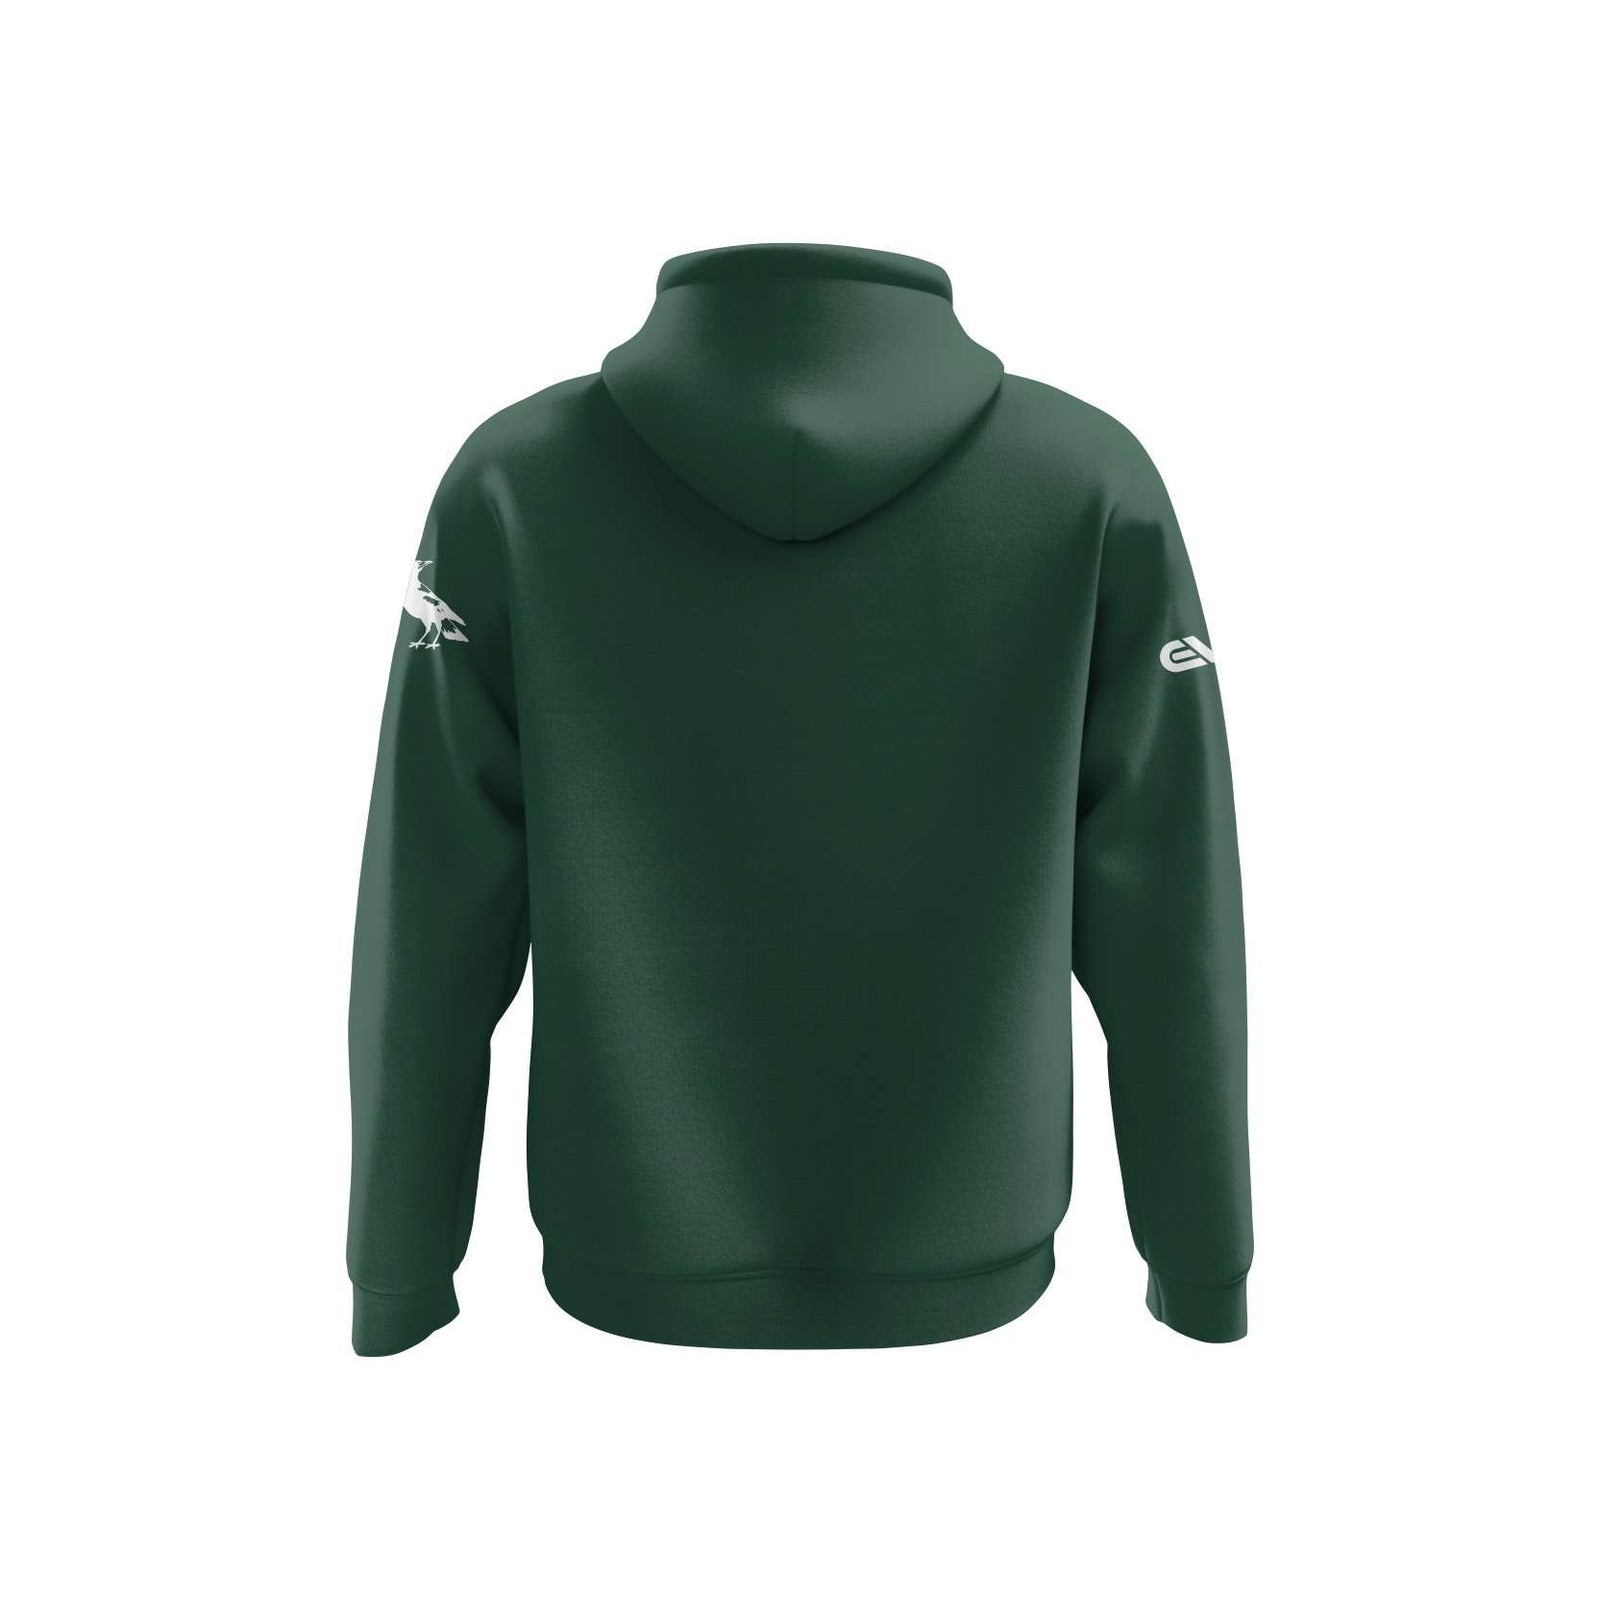 EMU Sportswear:South Brisbane Cricket Club - Champion Hoodie (Bottle)